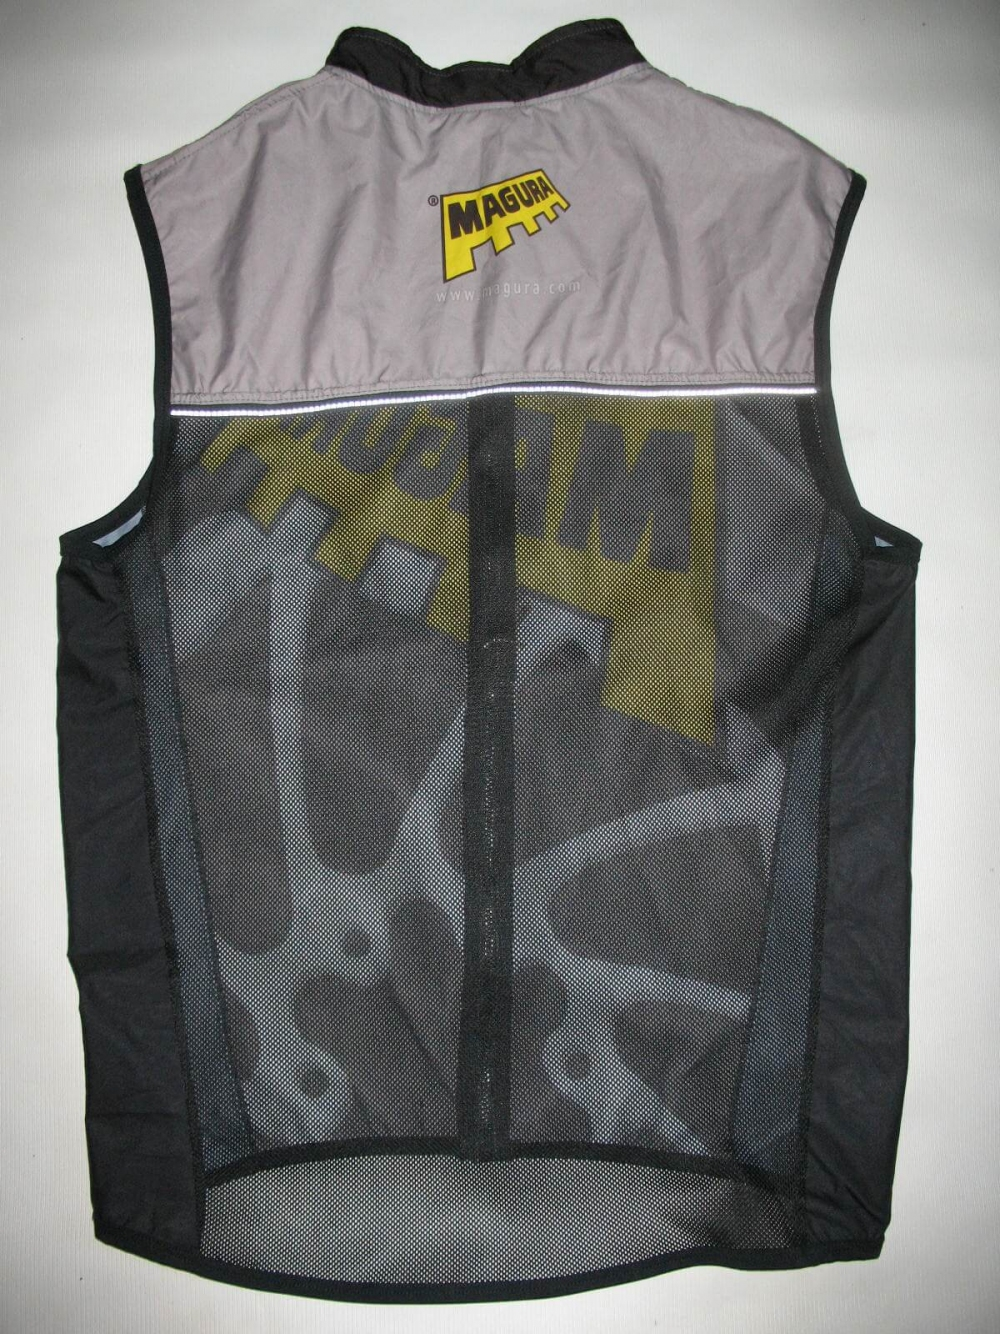 Веложилет BEST magura cycling vest (размер L) - 1